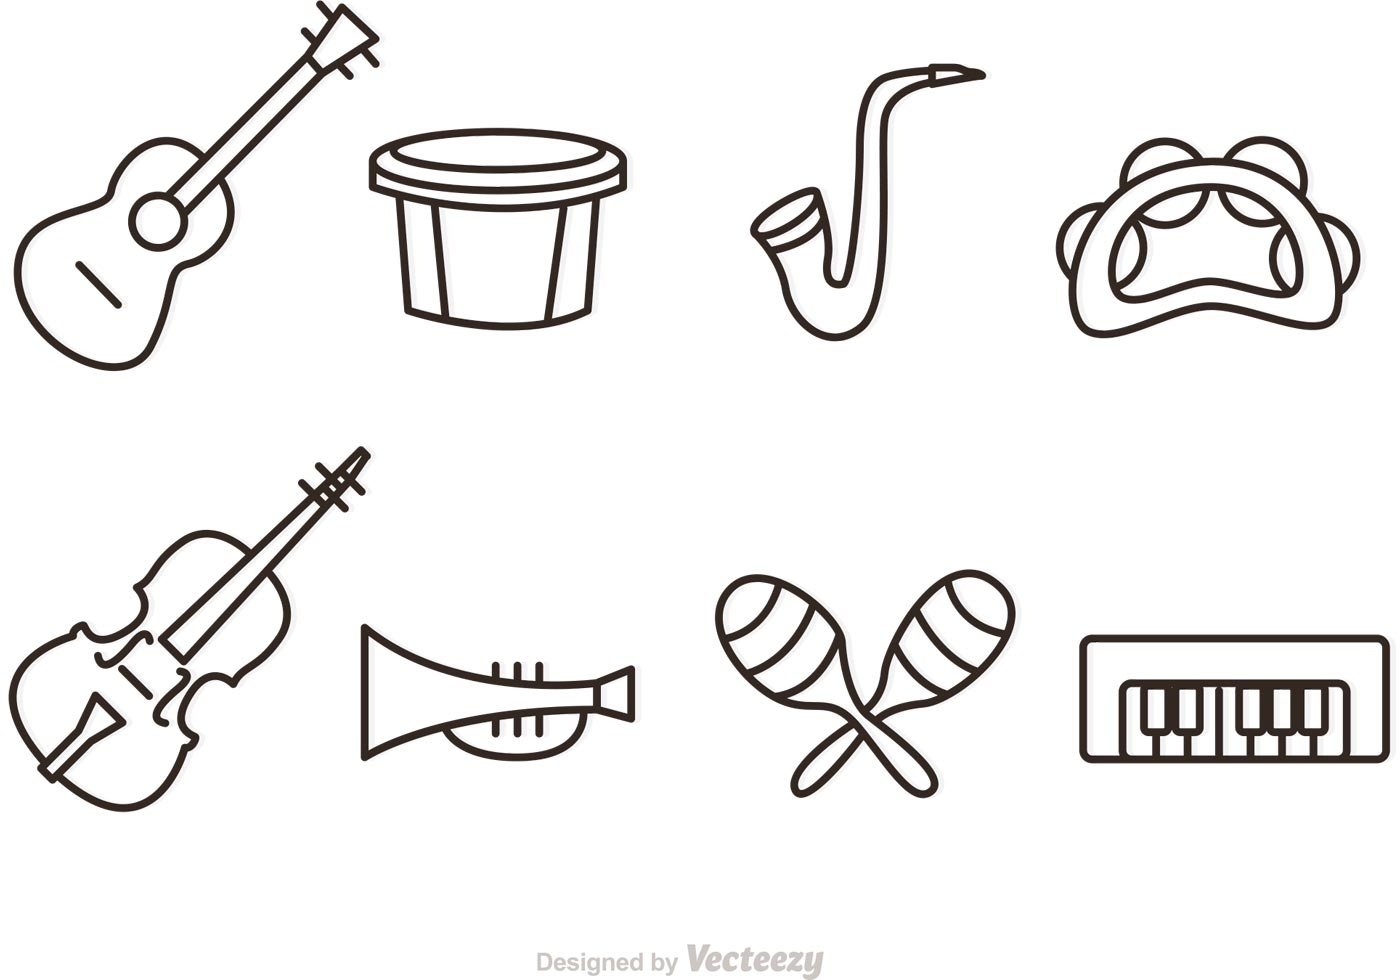 Outline Music Instrument Vector Icons